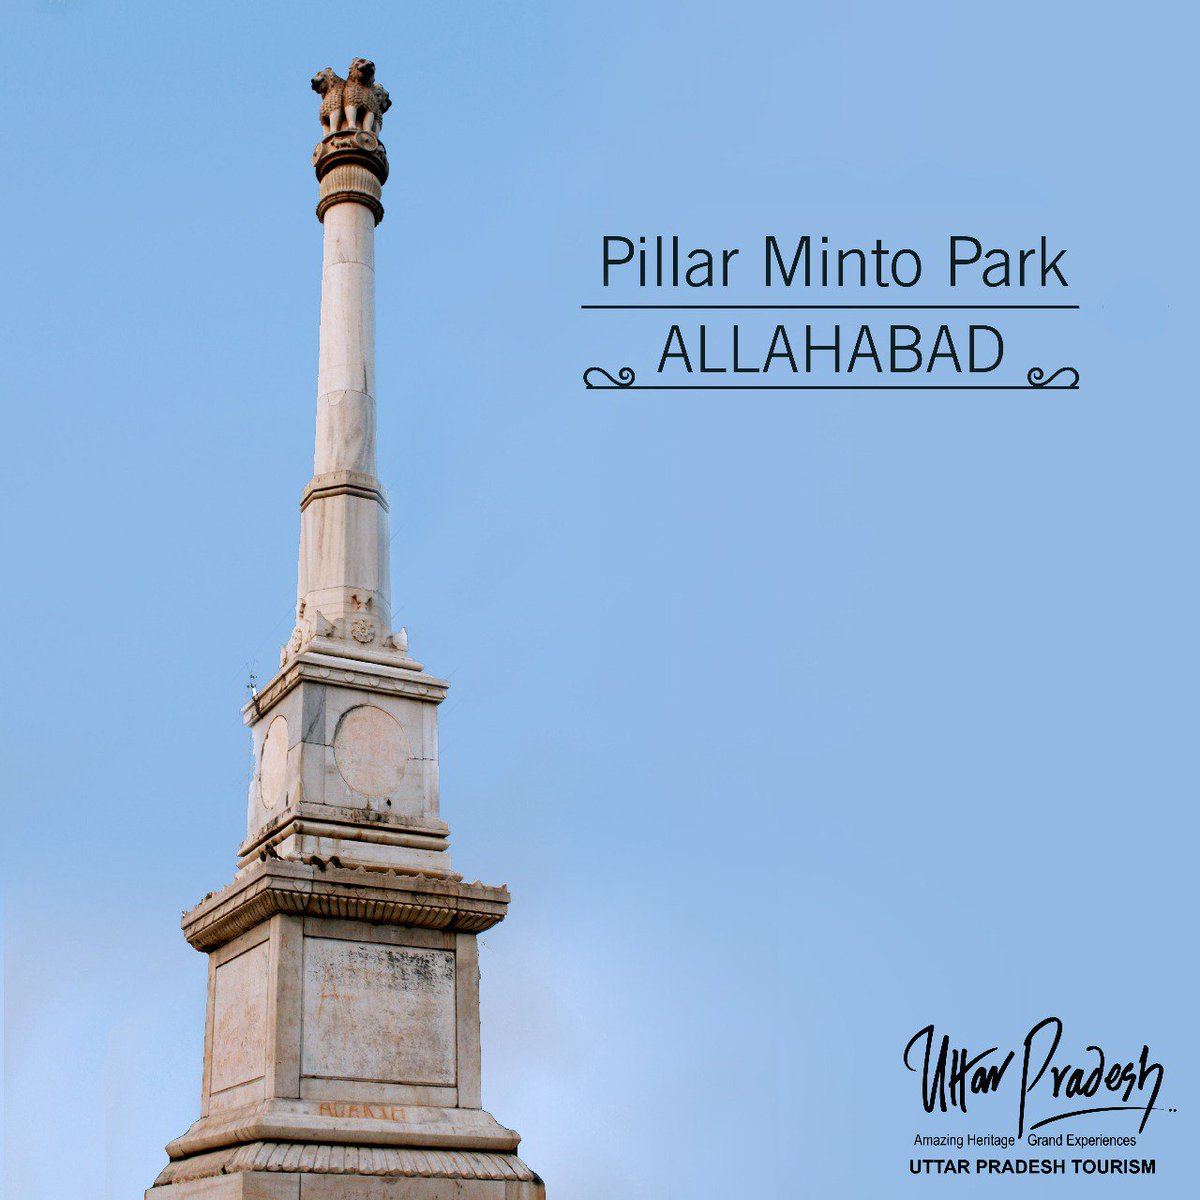 Up tourism on twitter situated near the saraswati ghat pillar up tourism on twitter situated near the saraswati ghat pillar minto park in allahabad is a stone memorial with a four lion symbol on top biocorpaavc Choice Image